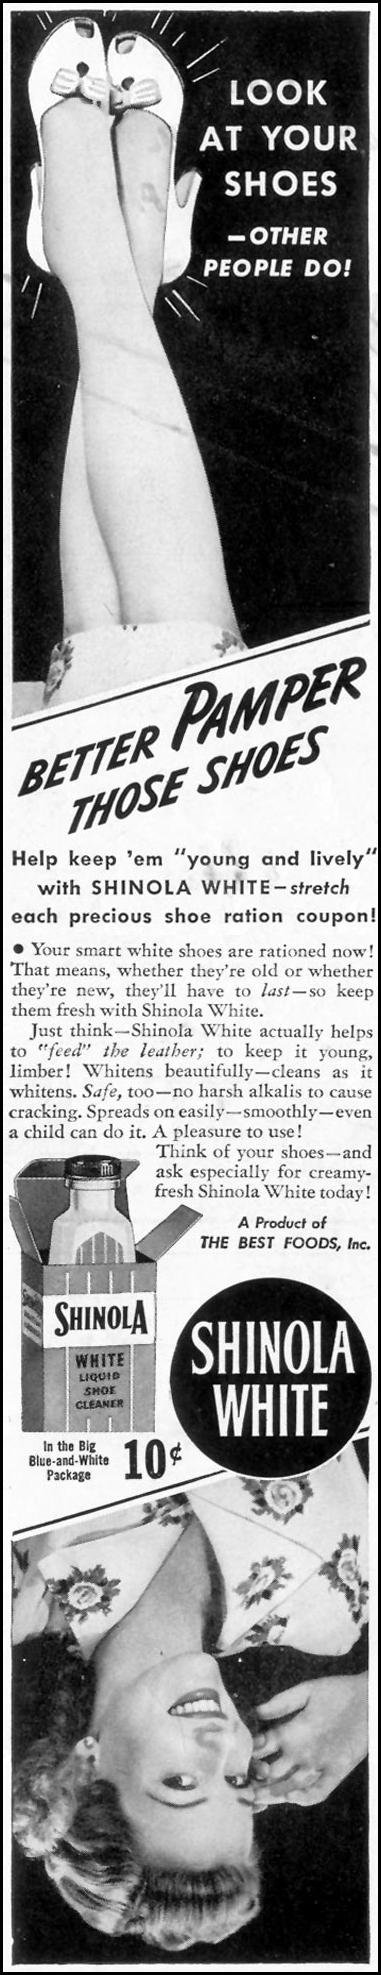 SHINOLA SHOE POLISH LIFE 05/24/1943 p. 98